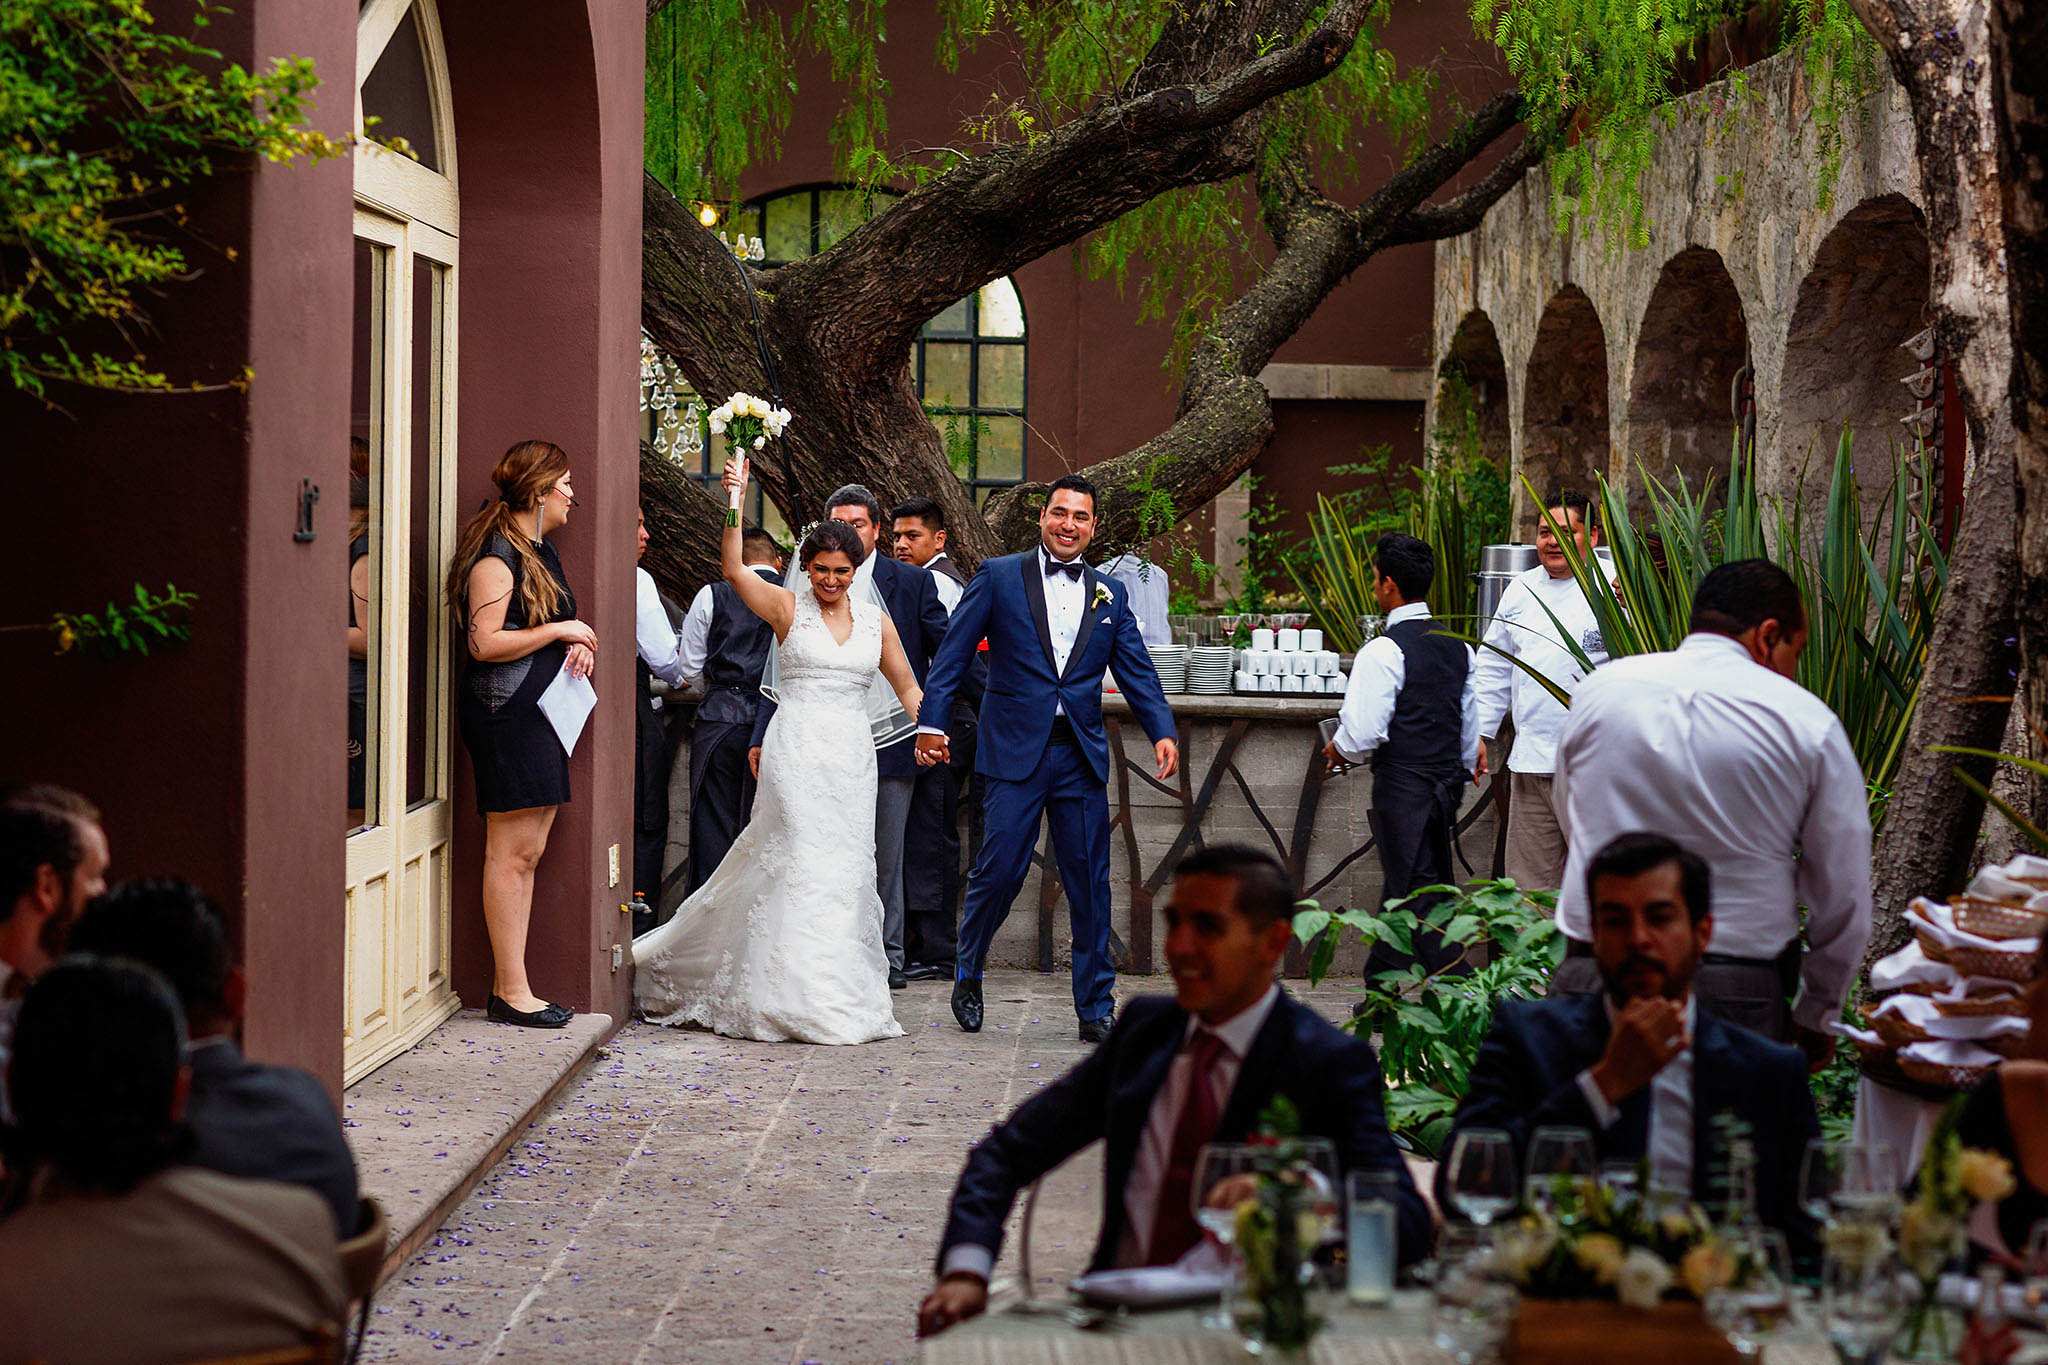 San-miguel-de-allende-weddings-hotel-nena57